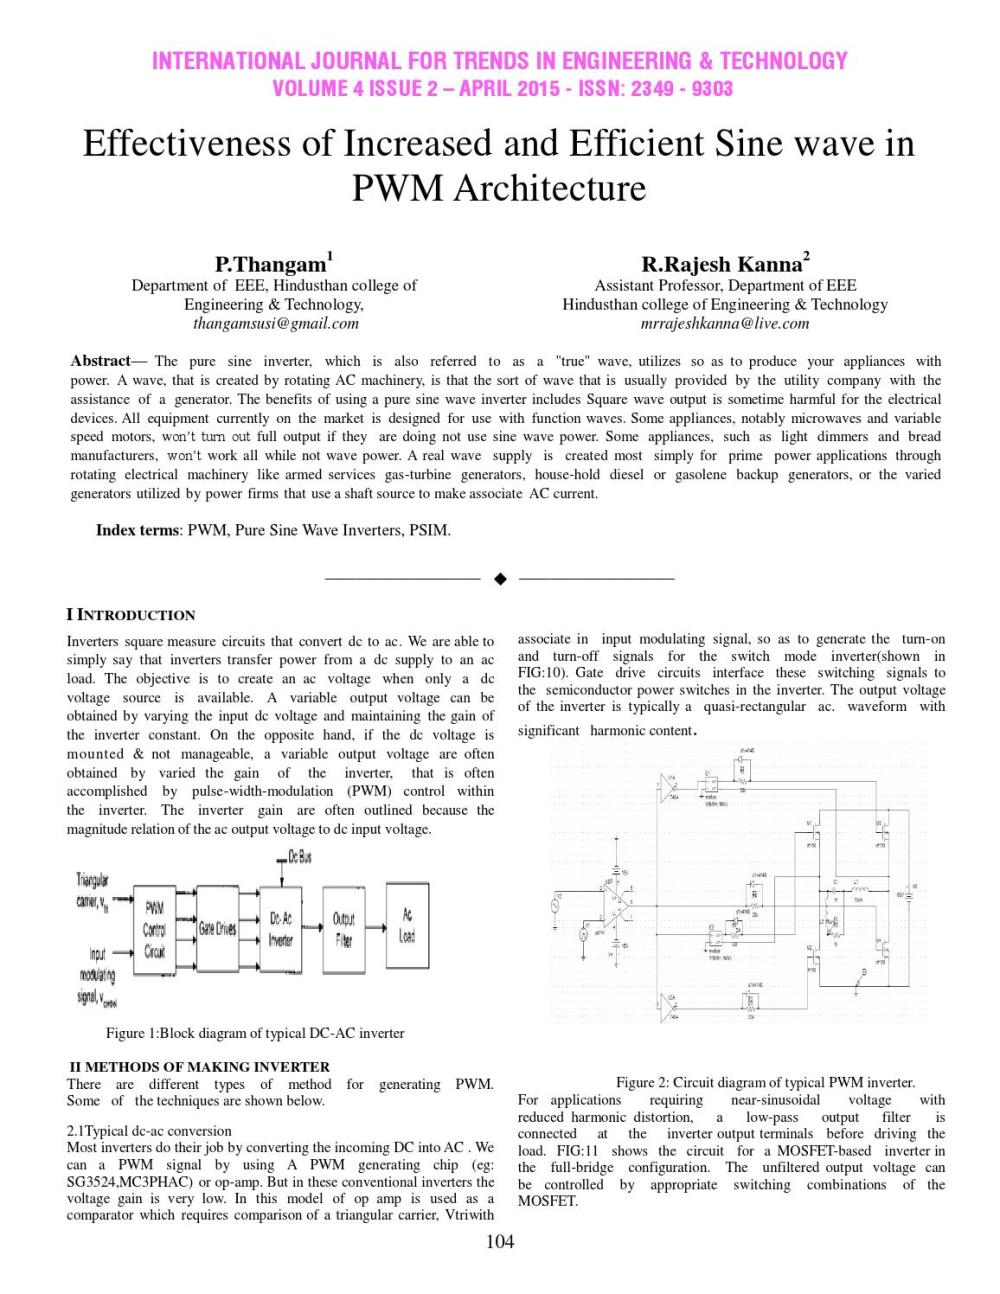 medium resolution of effectiveness of increased and efficient sine wave in pwm architecture by international journal for trends in engineering and technology issuu